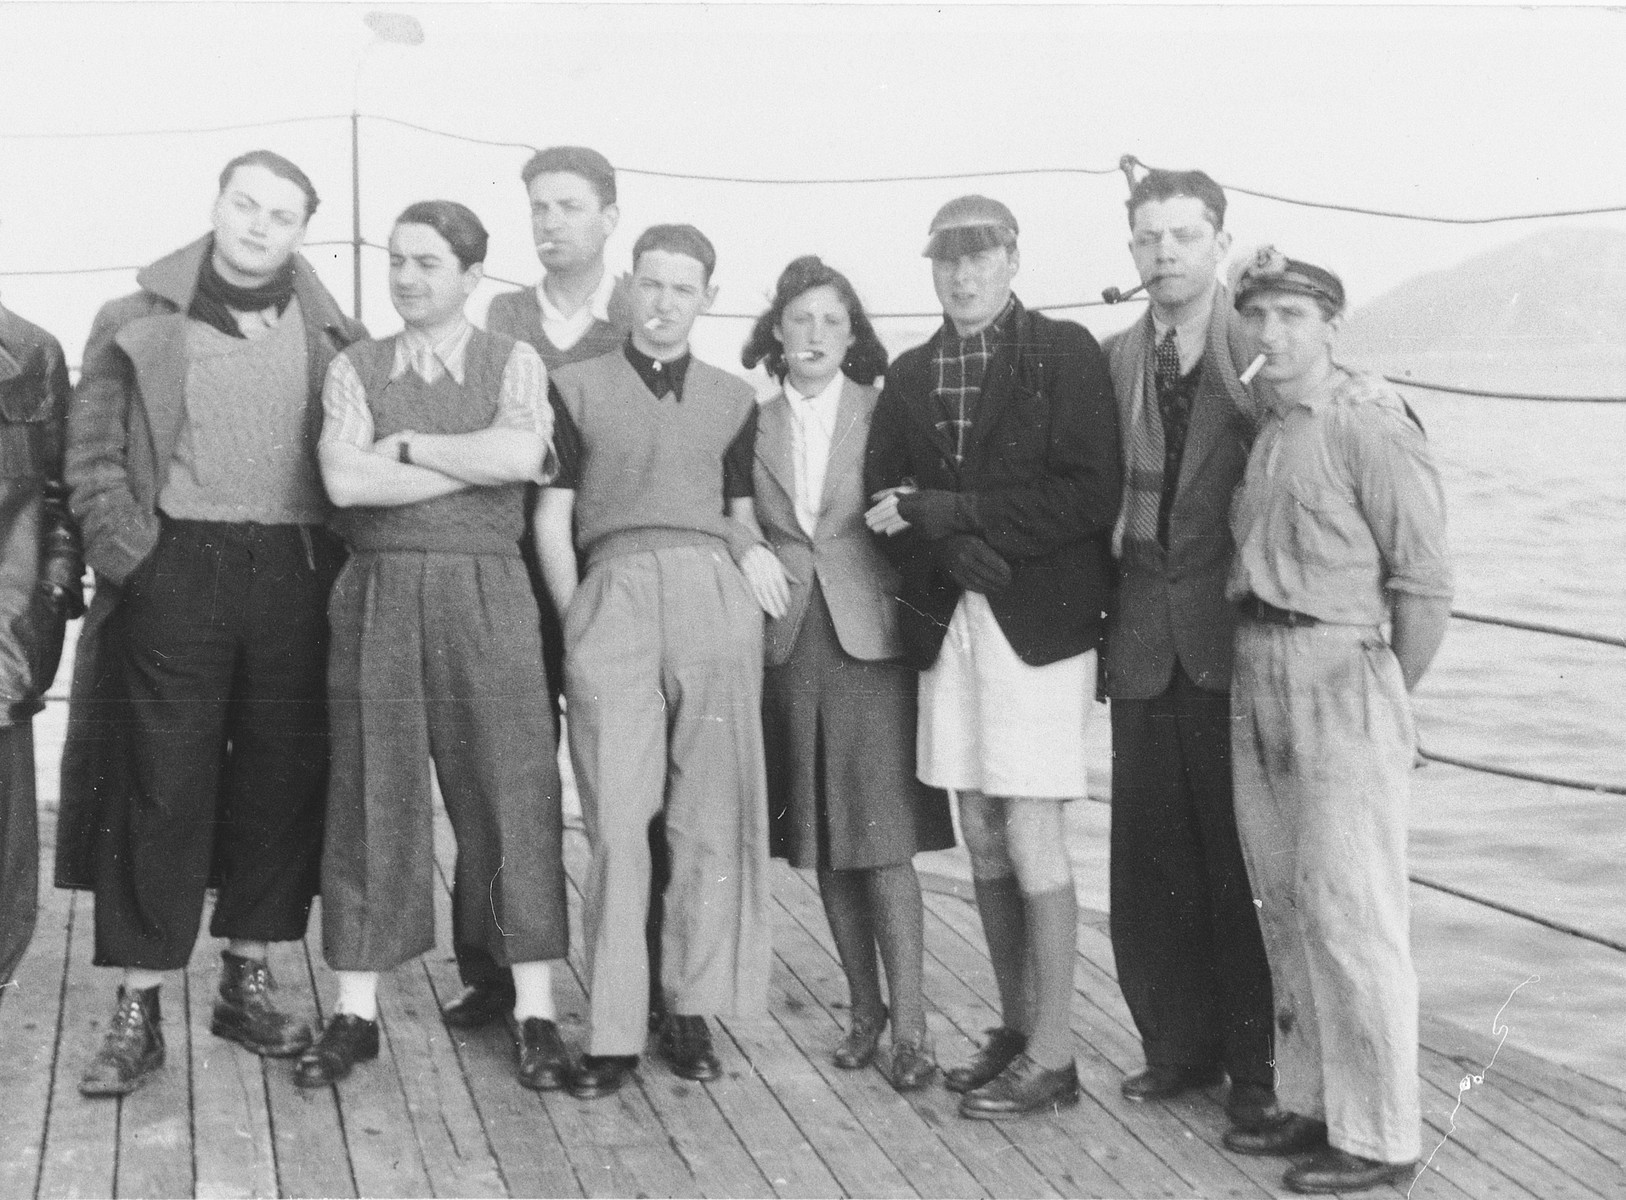 Passengers on board the SS Hamra sail from Romania to Palestine.  Among those pictured is Ella Feuerwerk (fourth from the right).